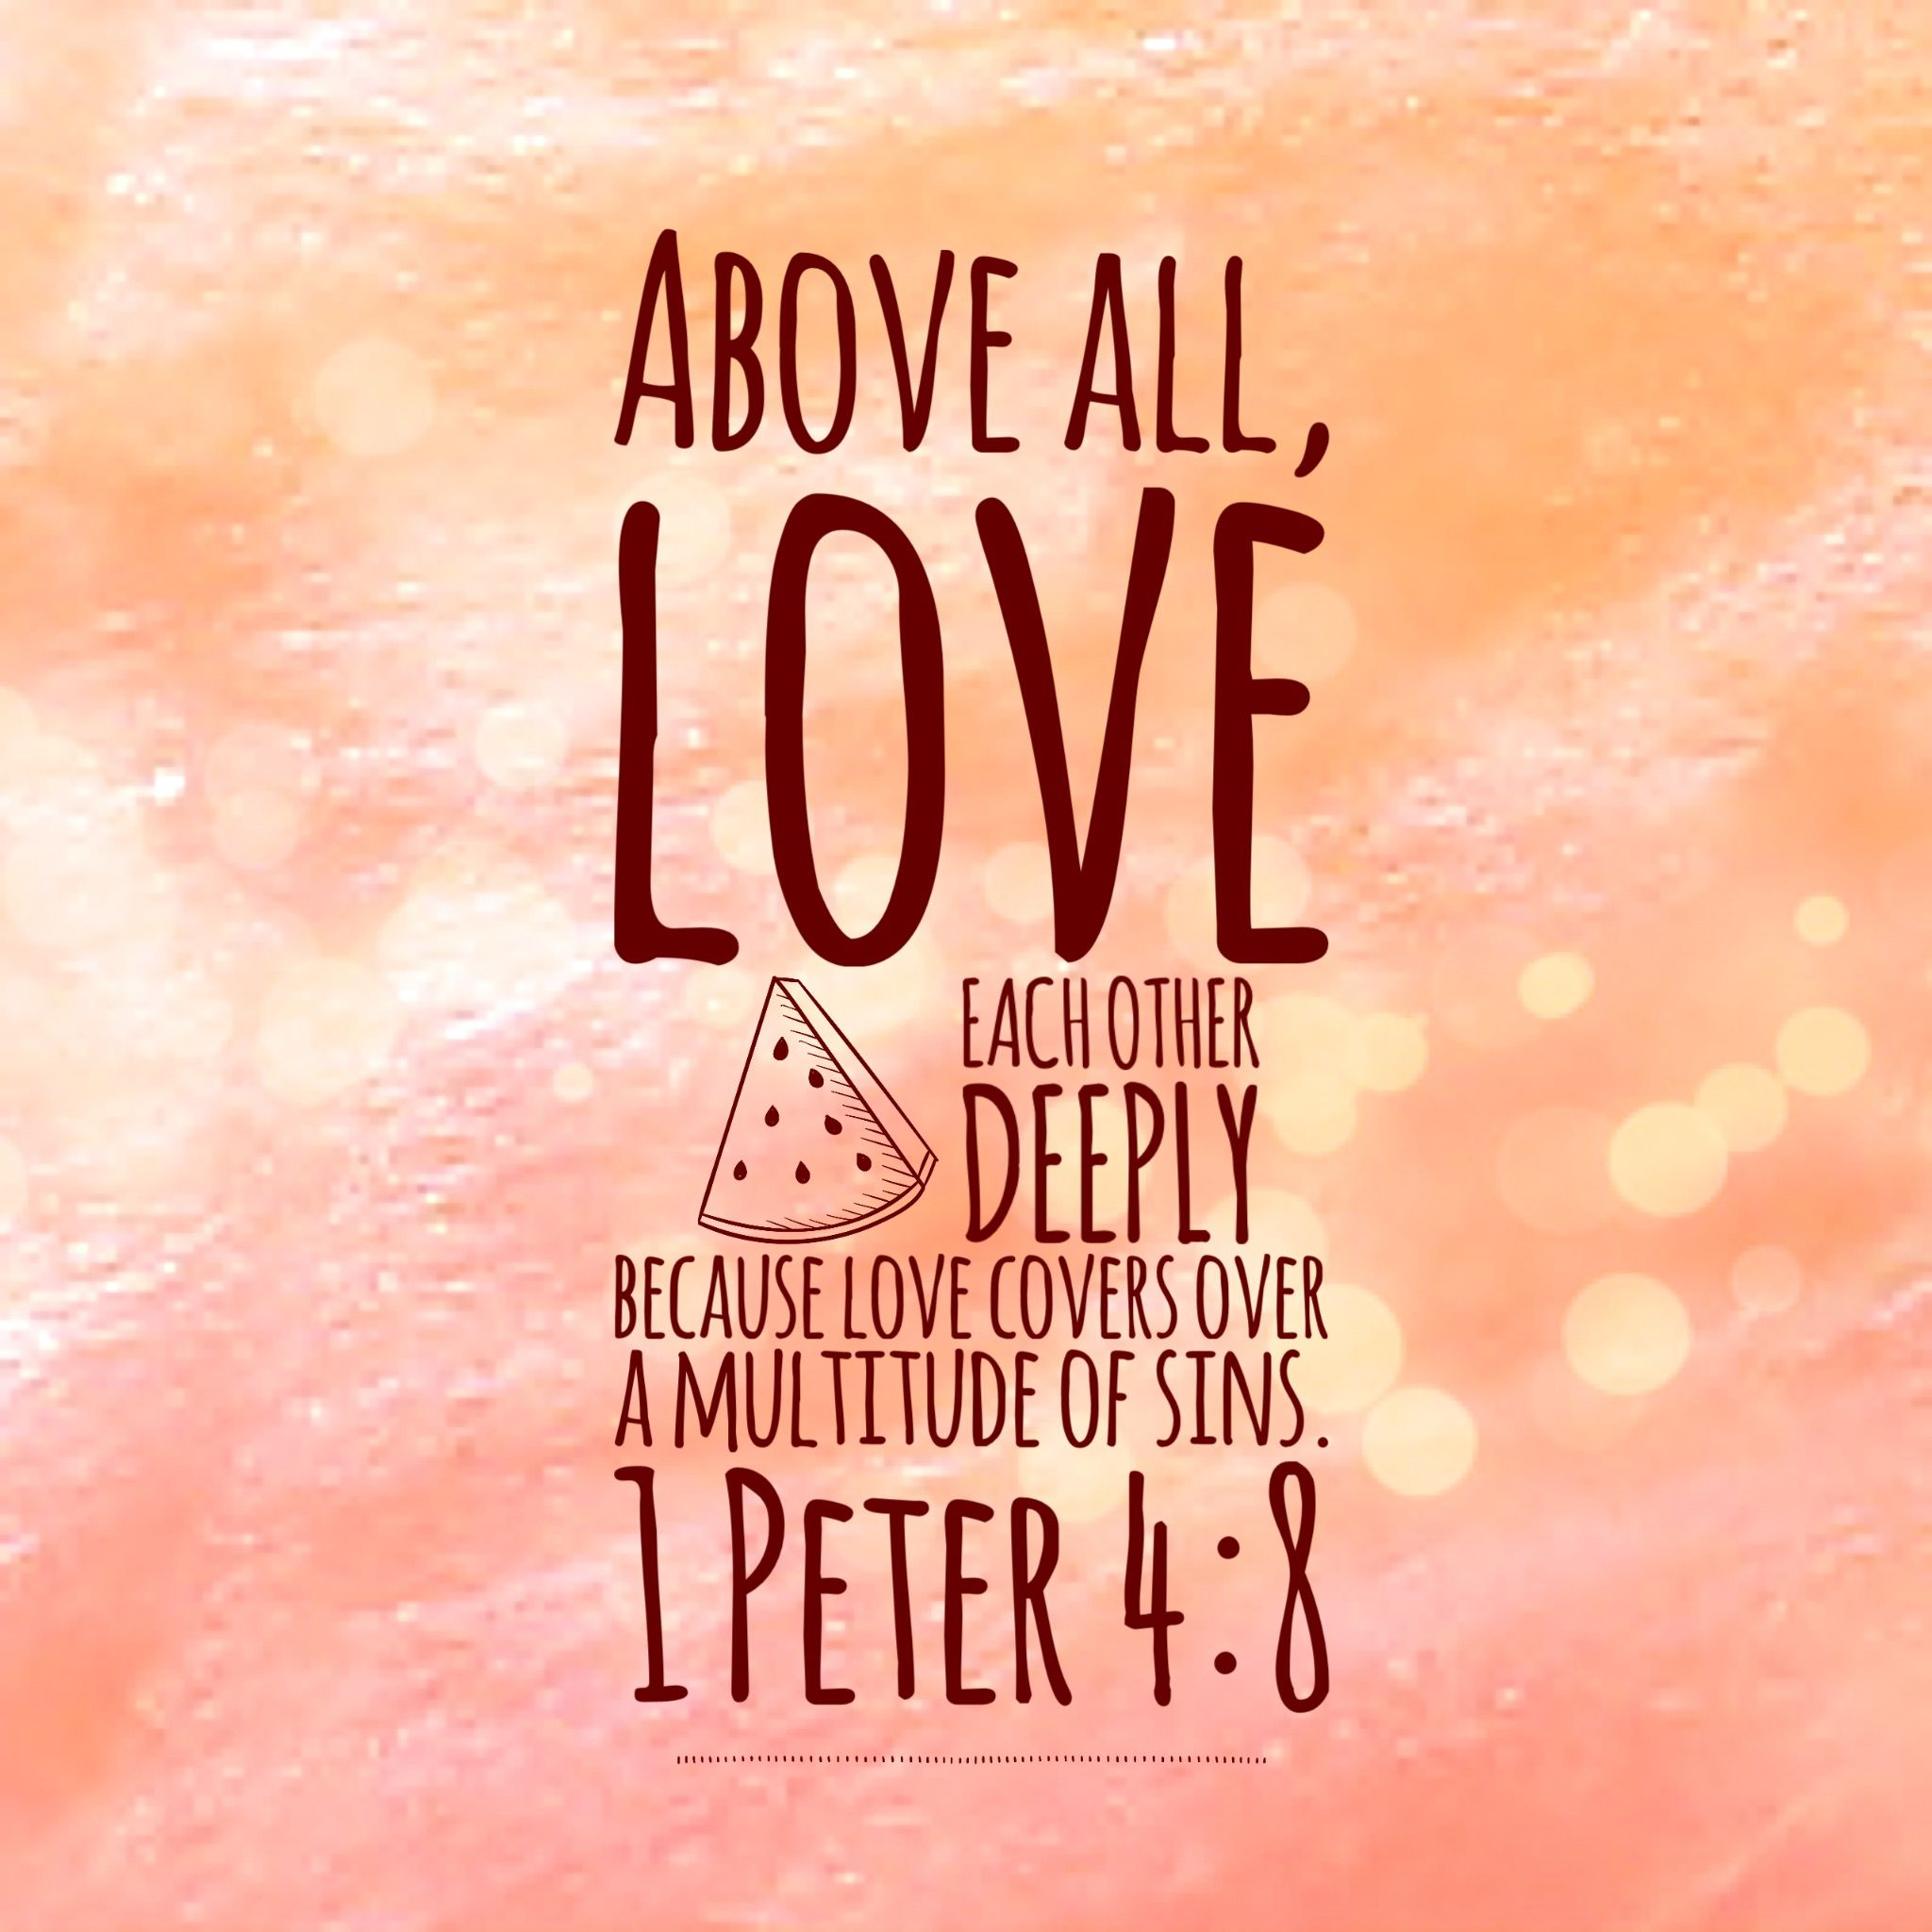 Jesus Love Each Other: Above All, Love Each Other Deeply, Because Love Covers